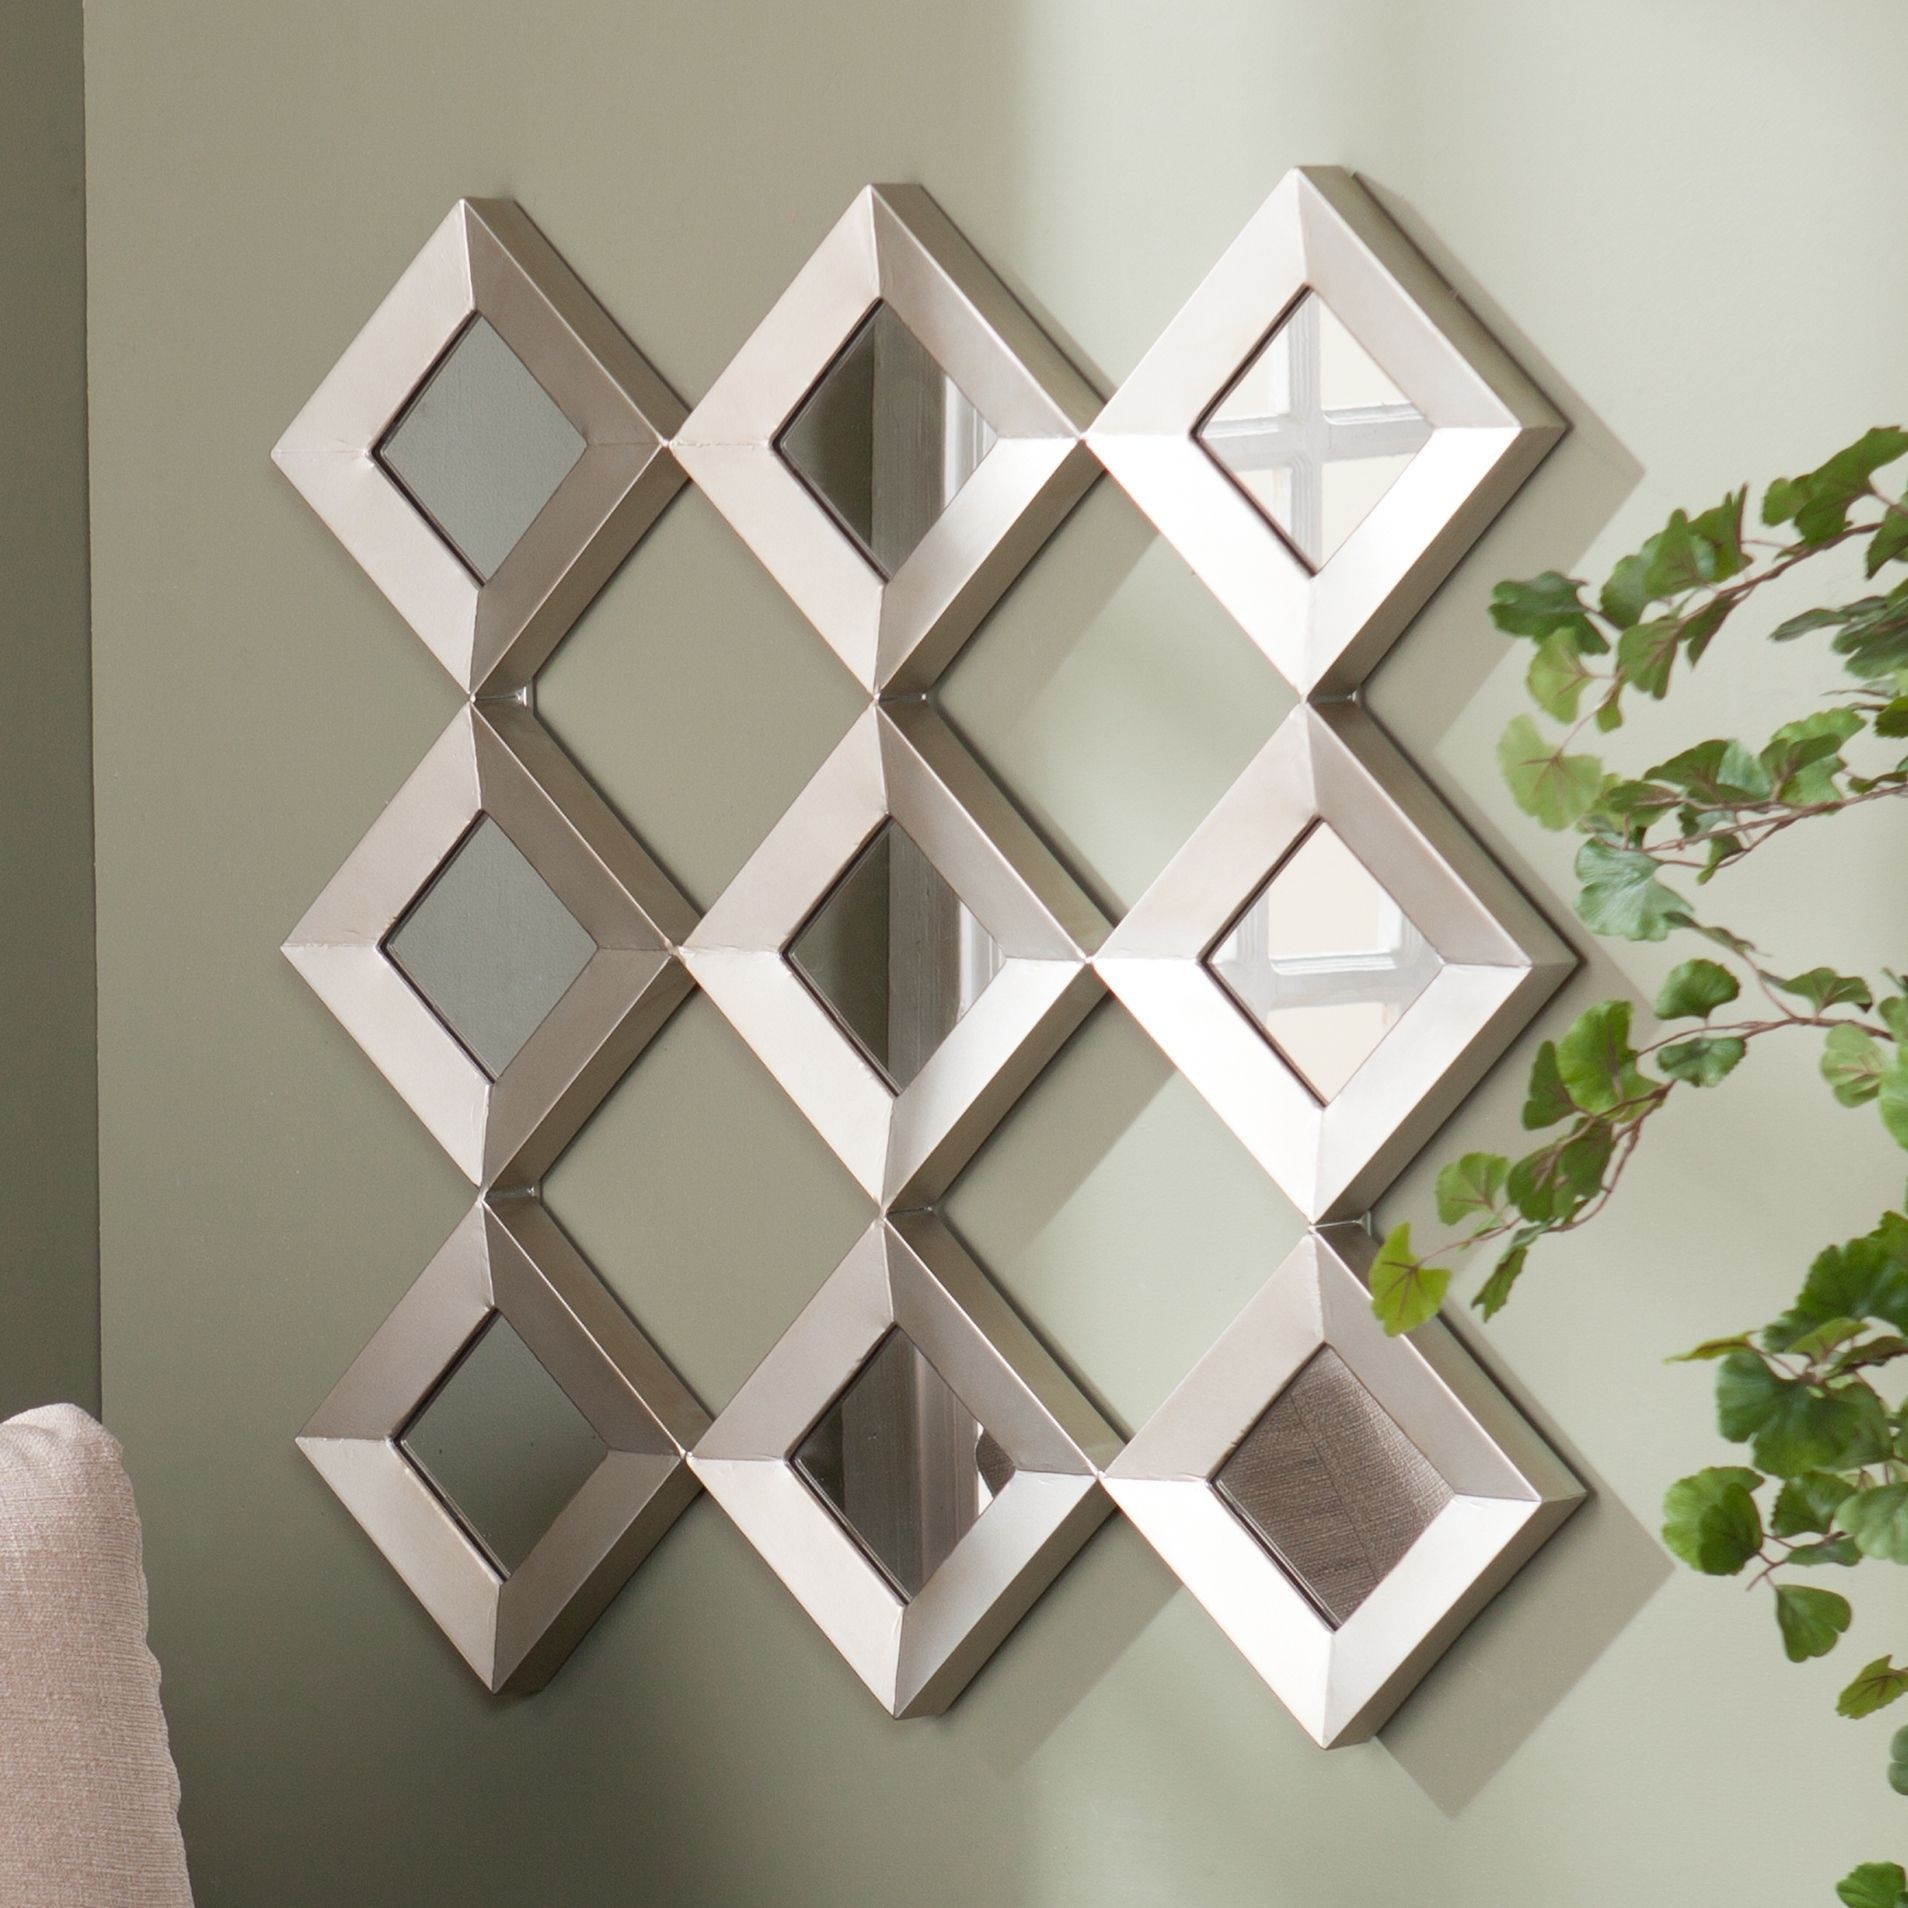 Modern Mirrored Wall Art Of Harper Blvd Diamante Mirrored Squares Wall Sculpture